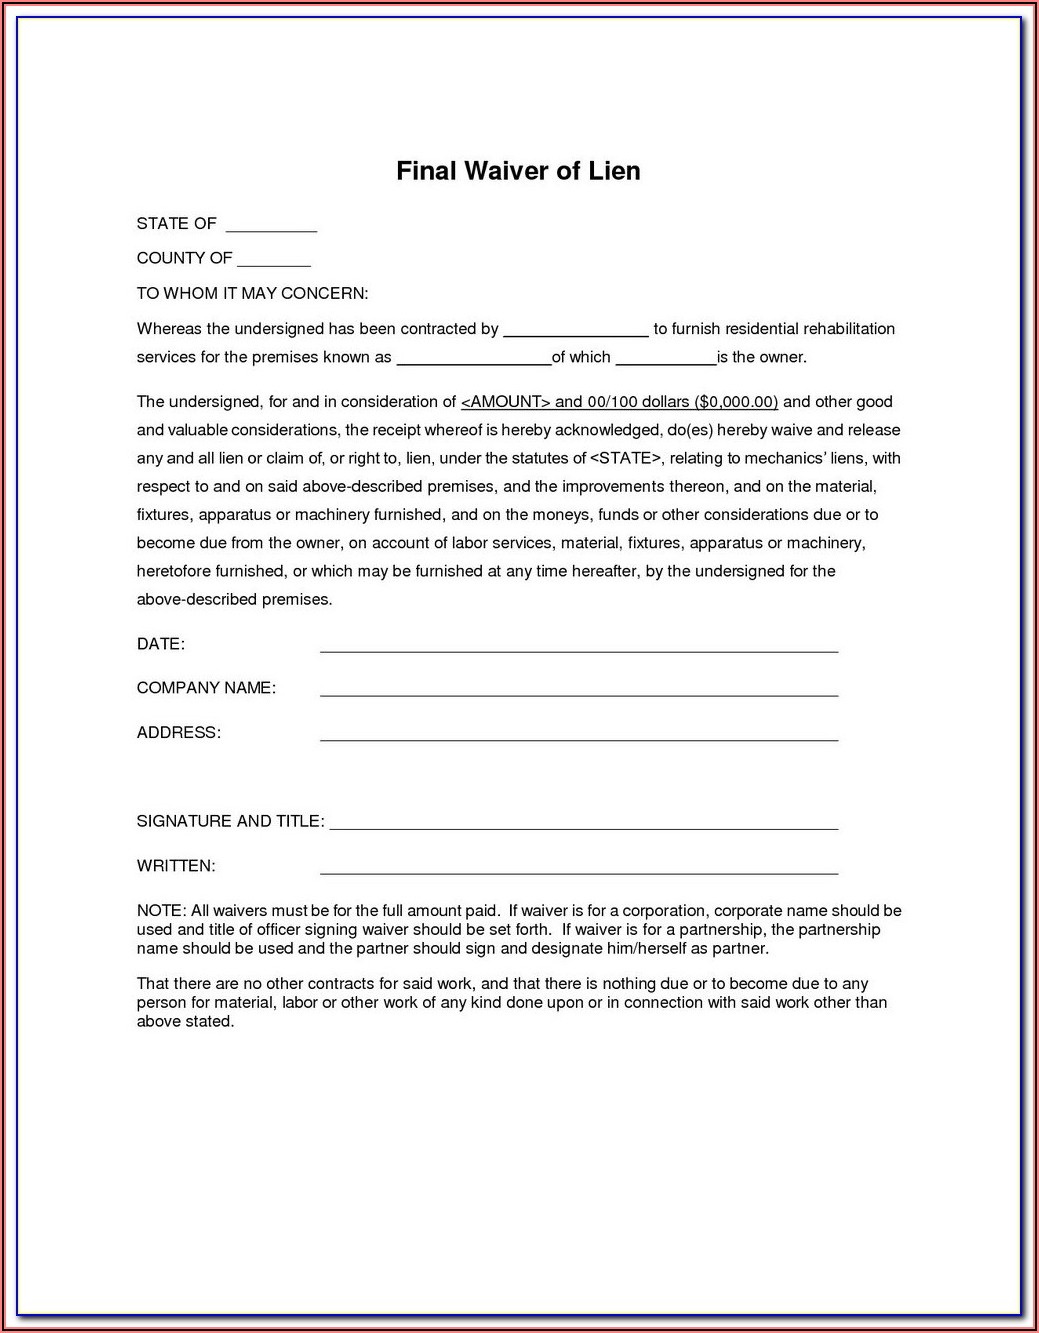 Partial Lien Waiver Form New York